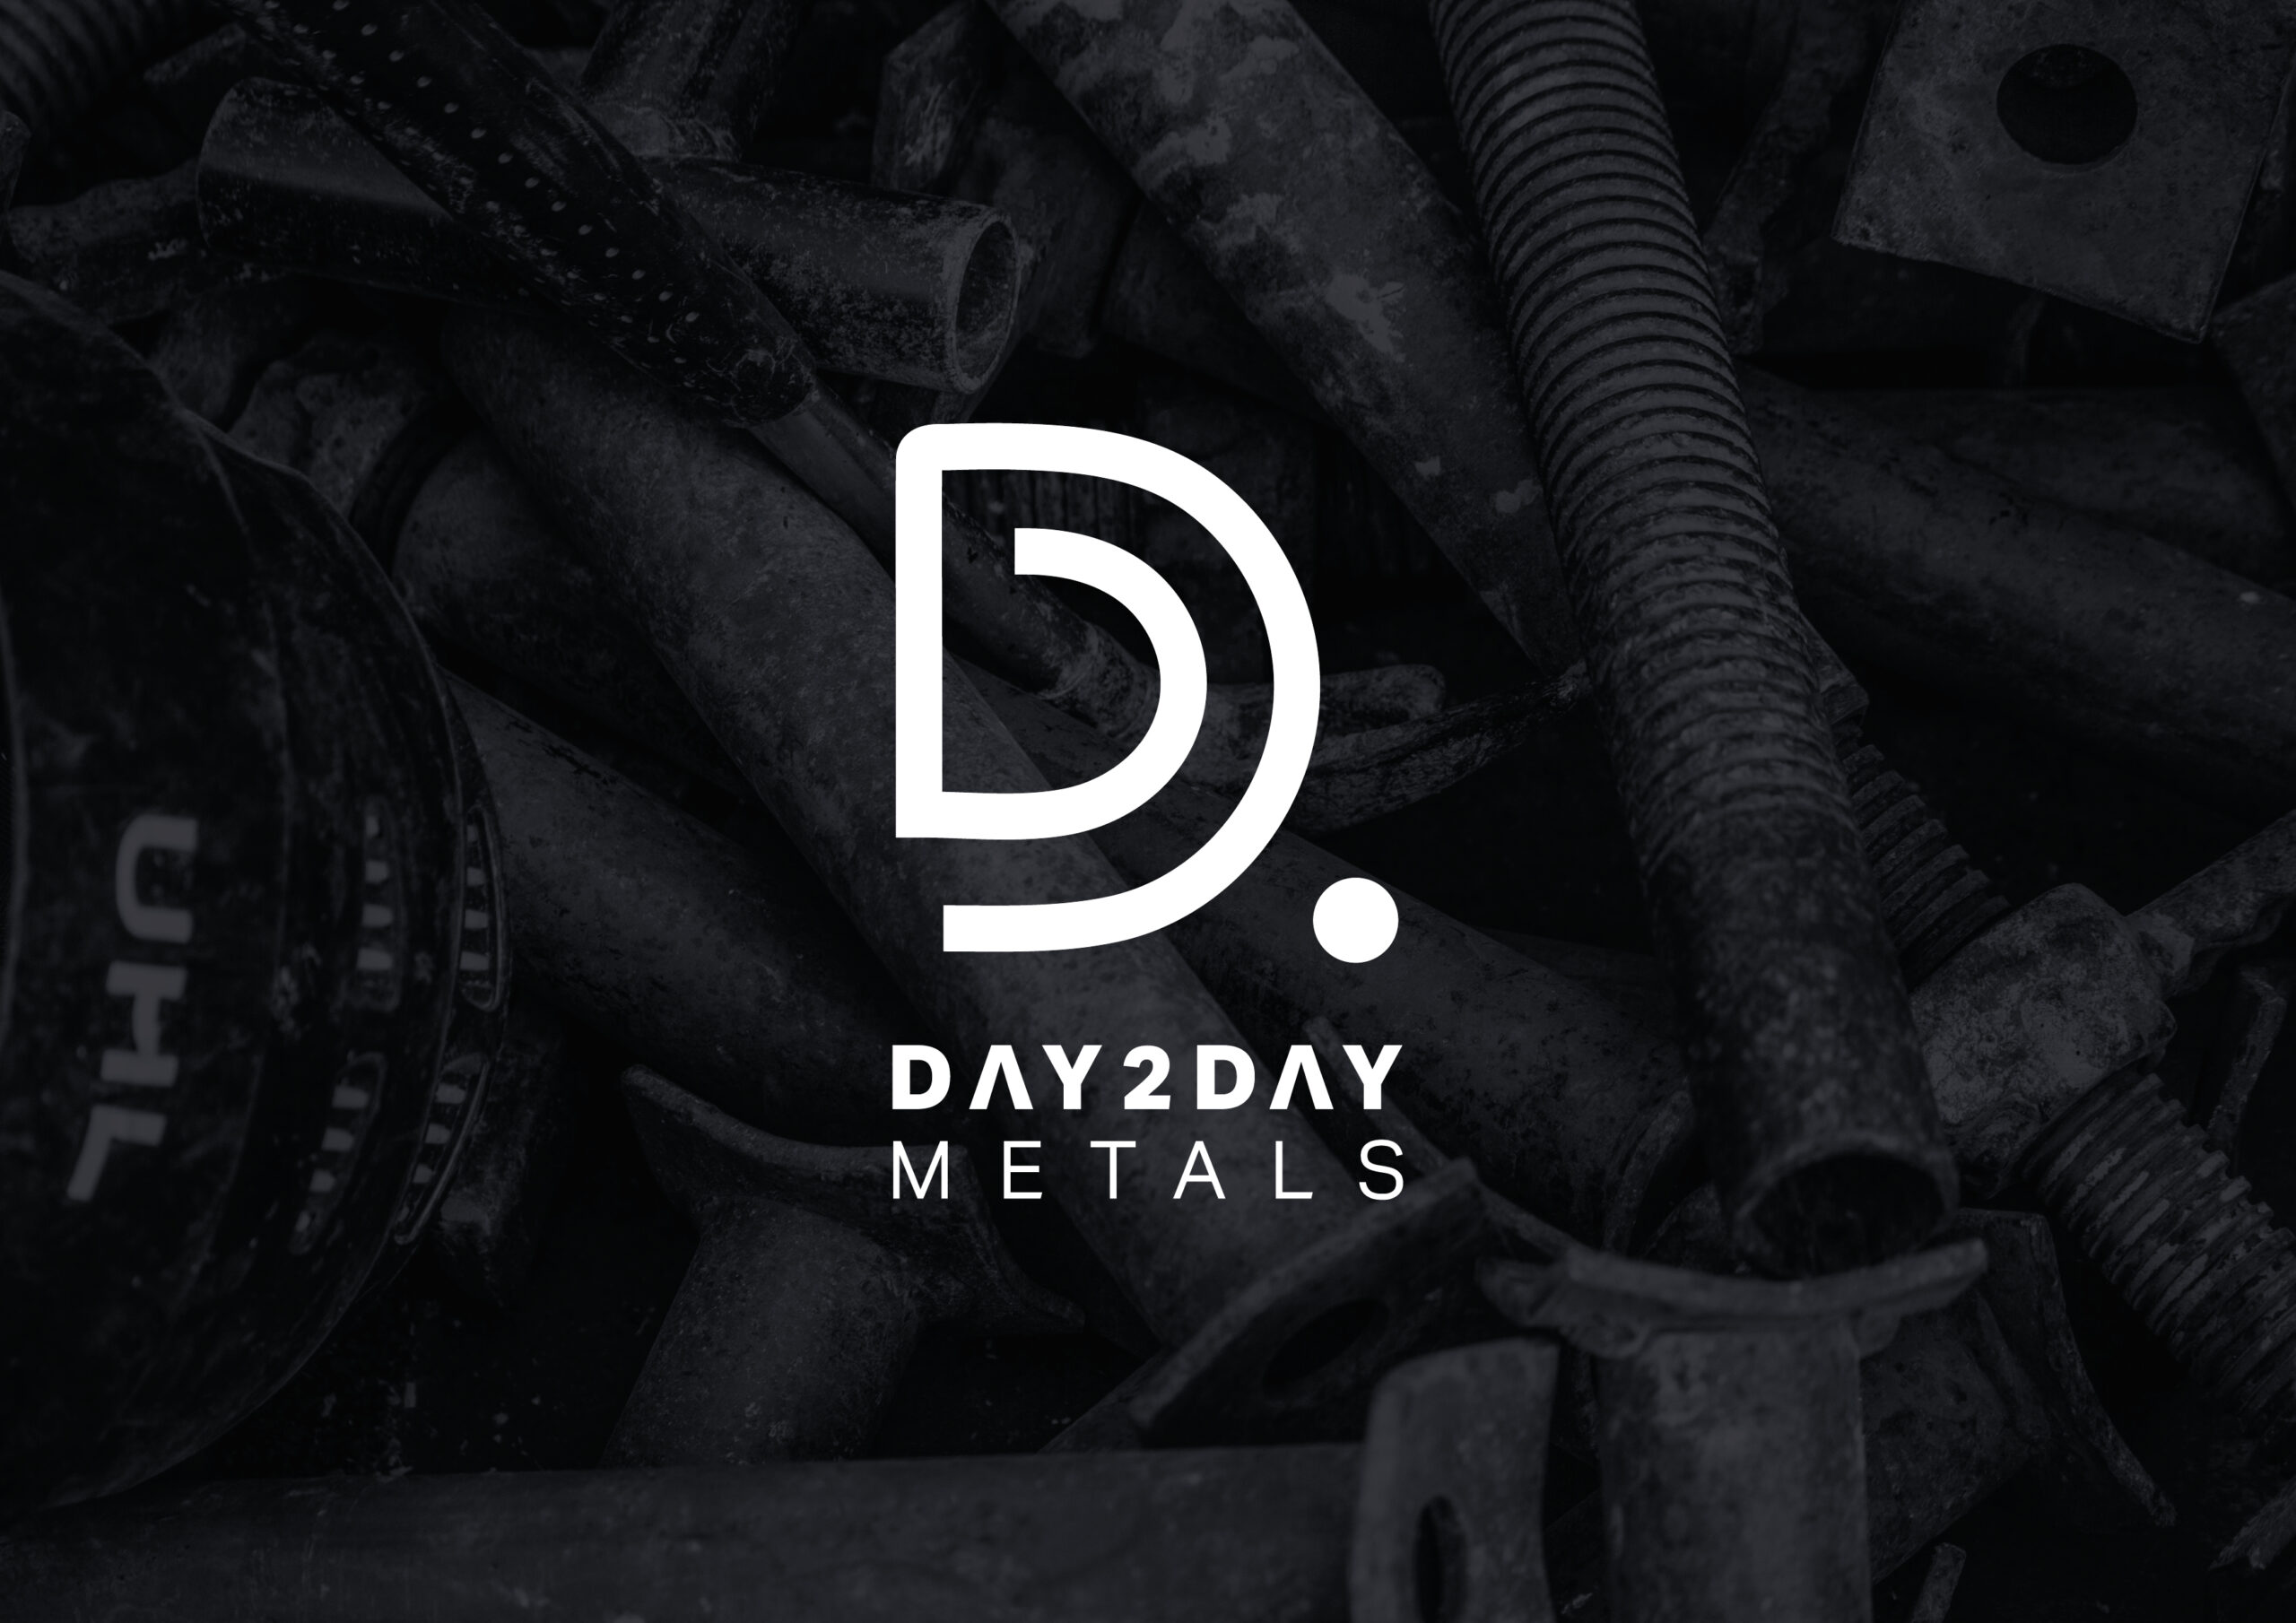 Day2day metals logo